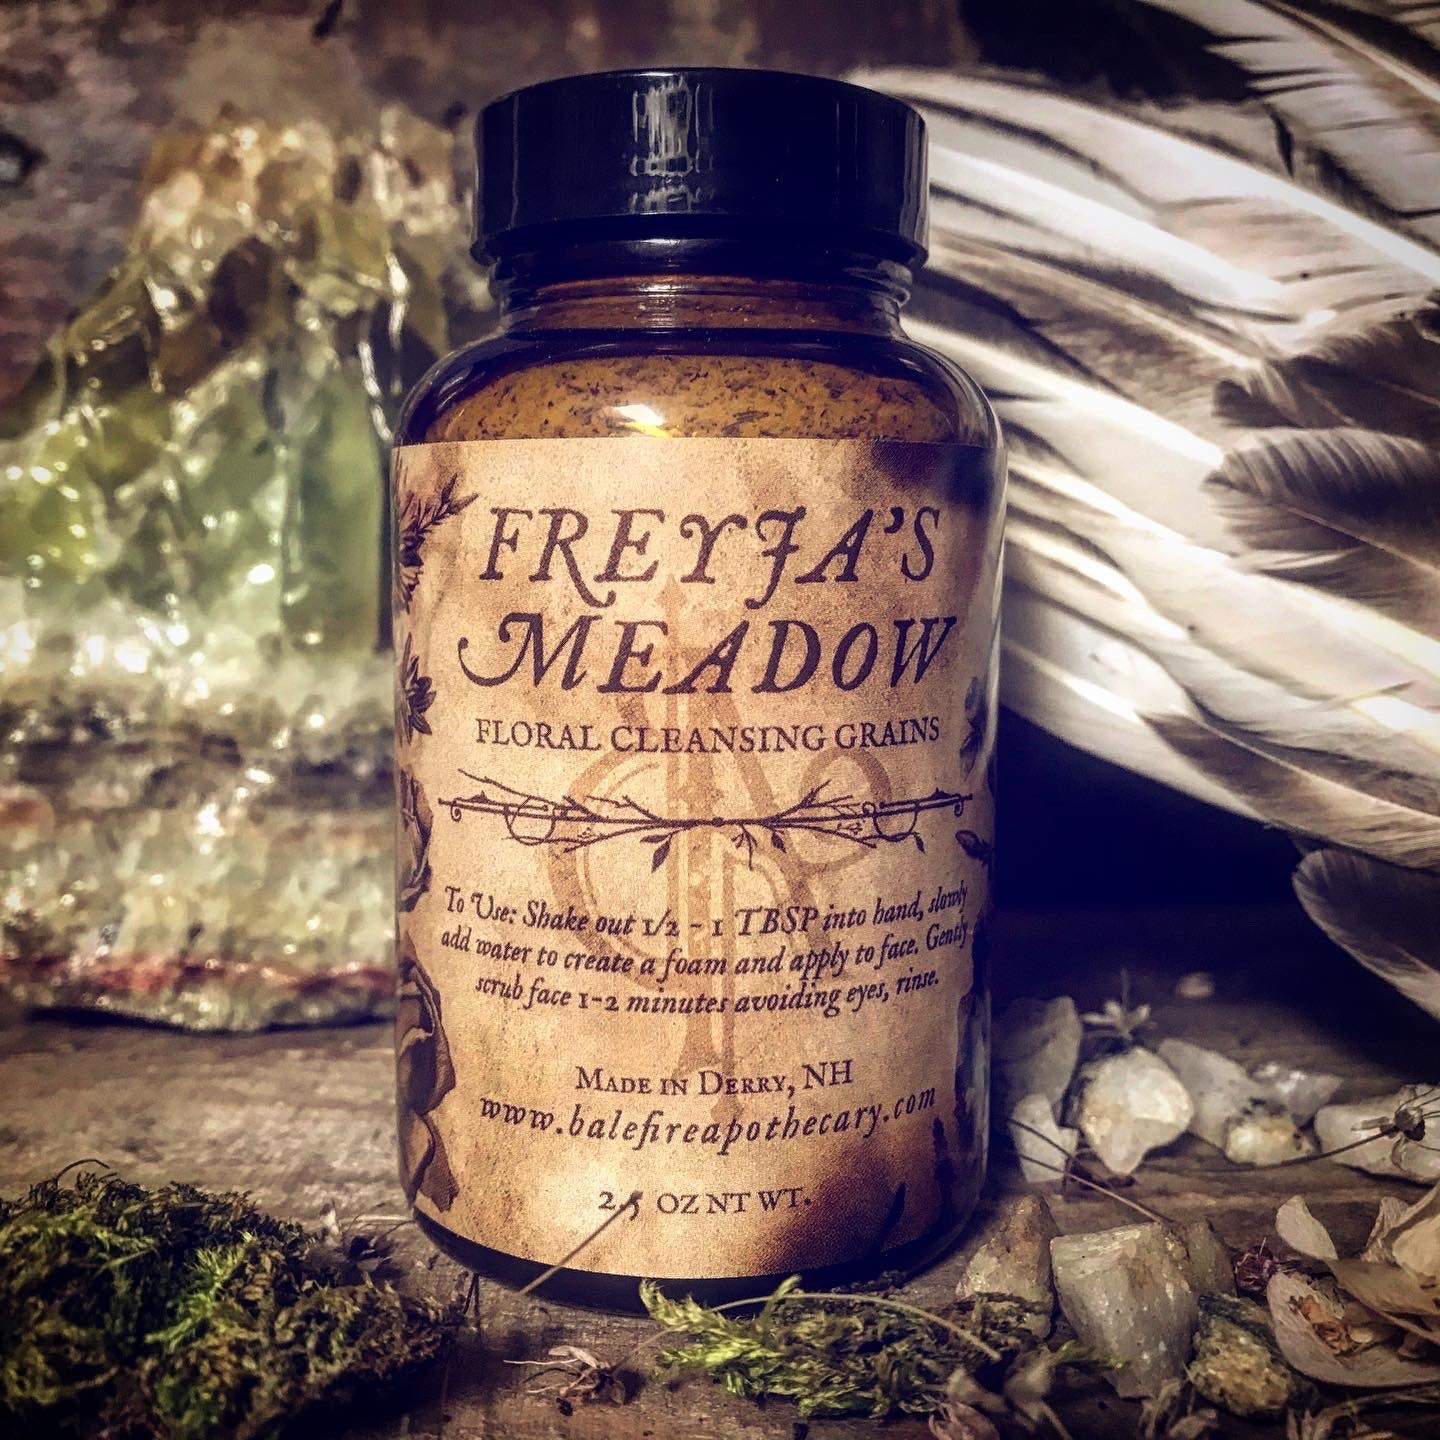 Freyja's Meadow Floral Cleansing Grains